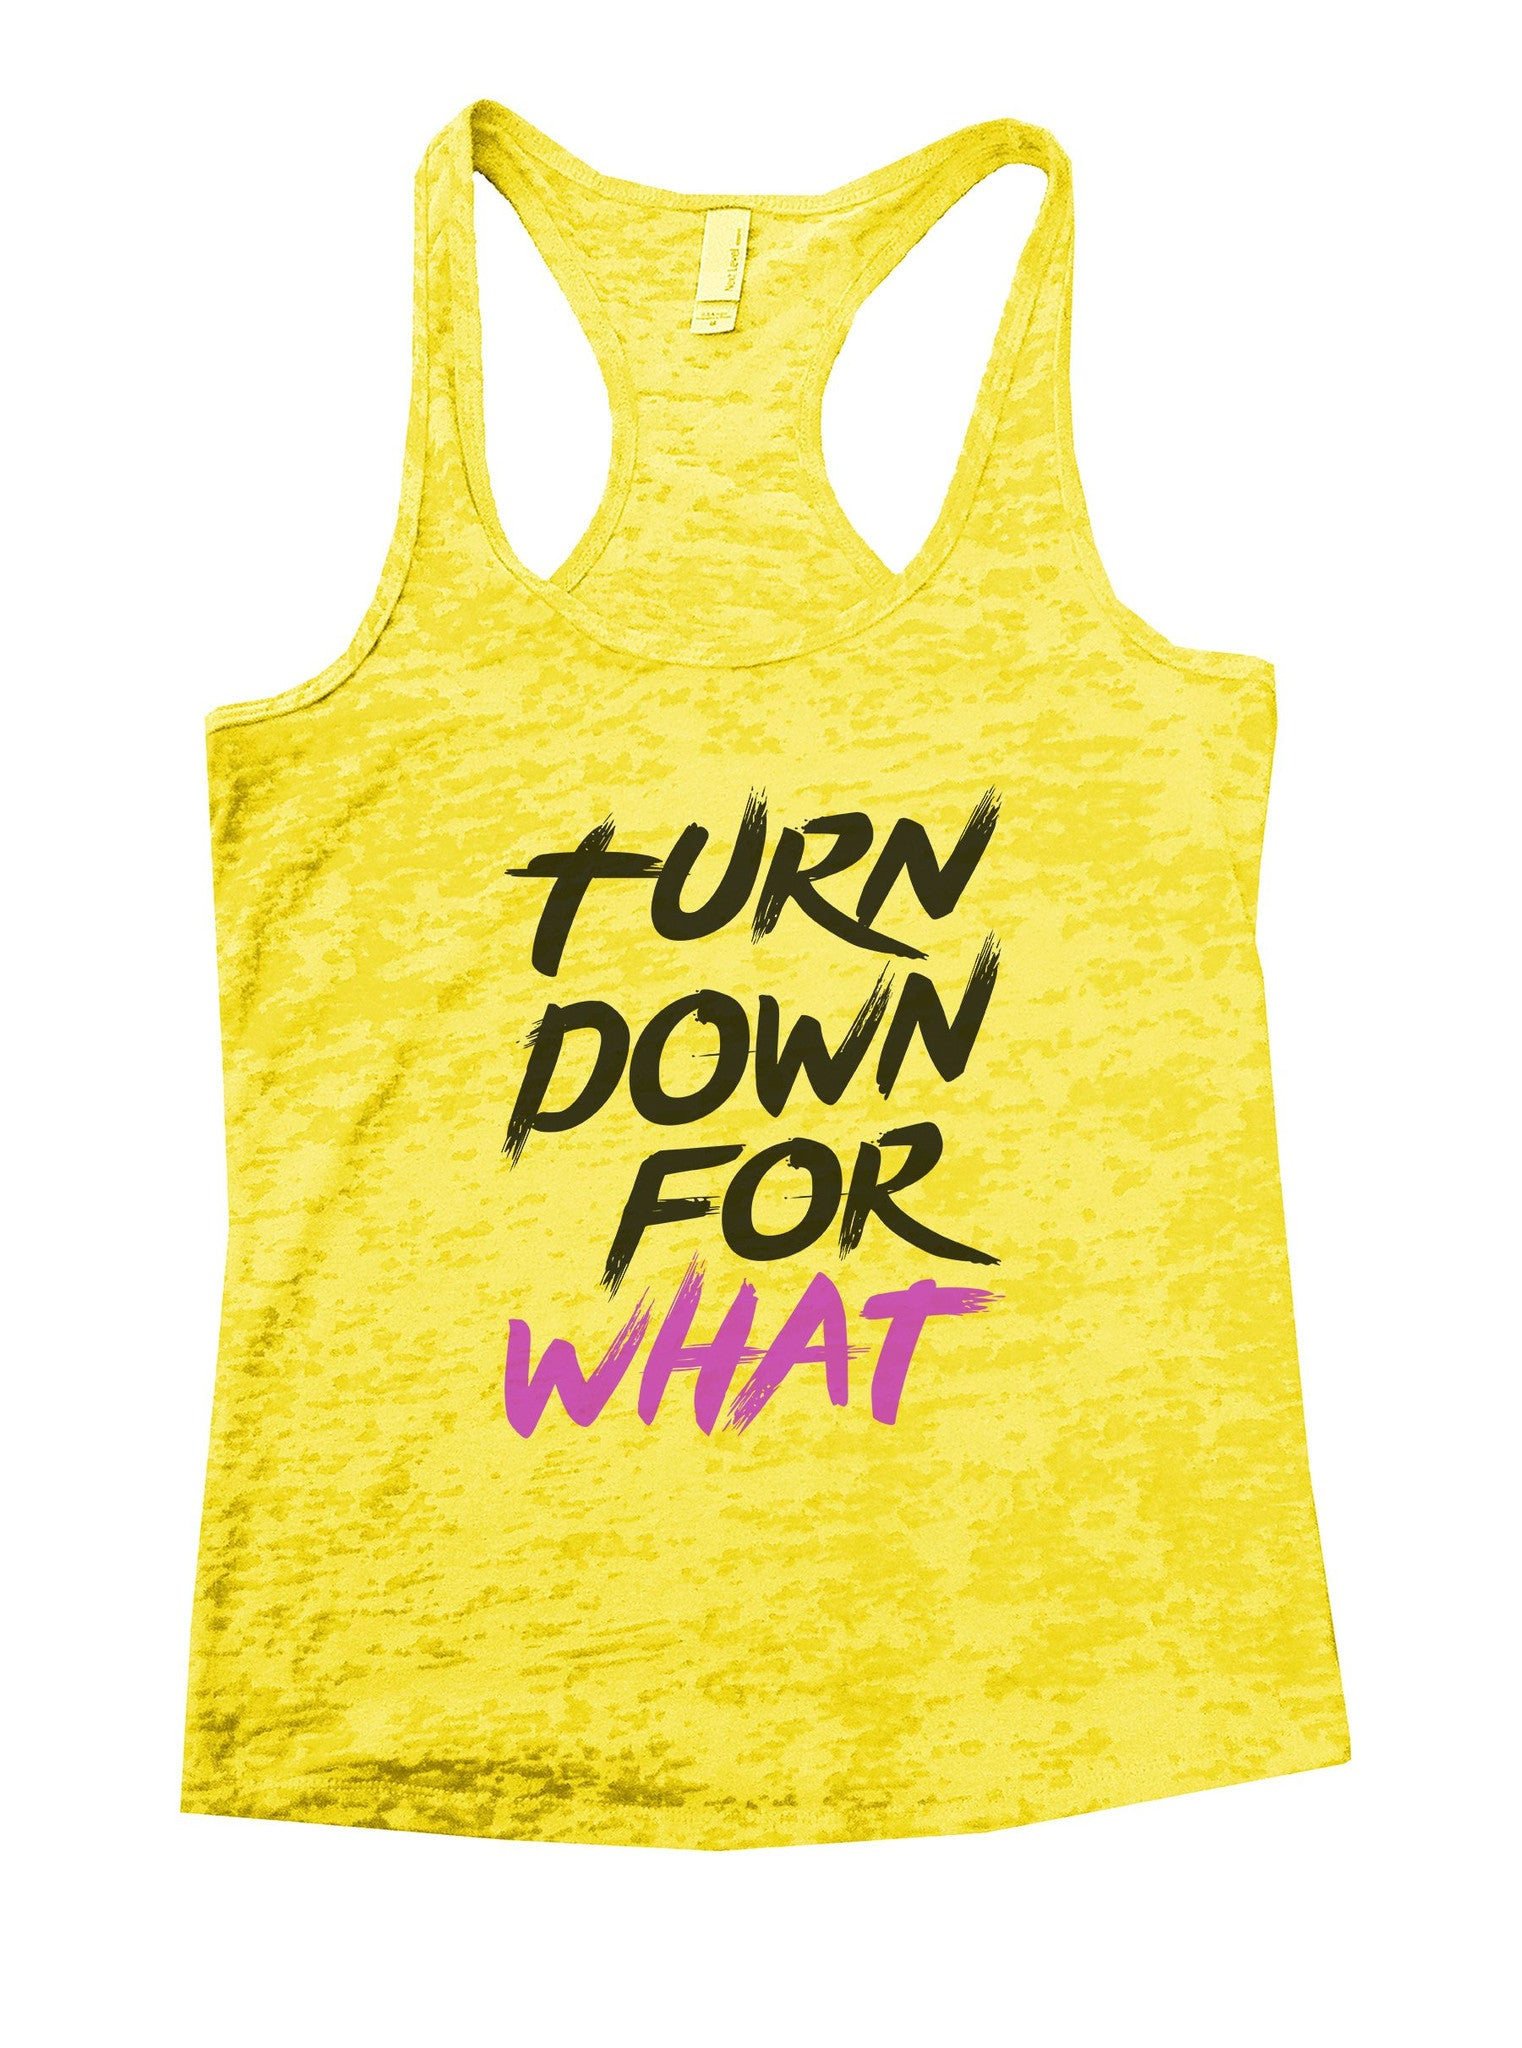 Turn Down For What Burnout Tank Top By BurnoutTankTops.com - 1126 - Funny Shirts Tank Tops Burnouts and Triblends  - 7